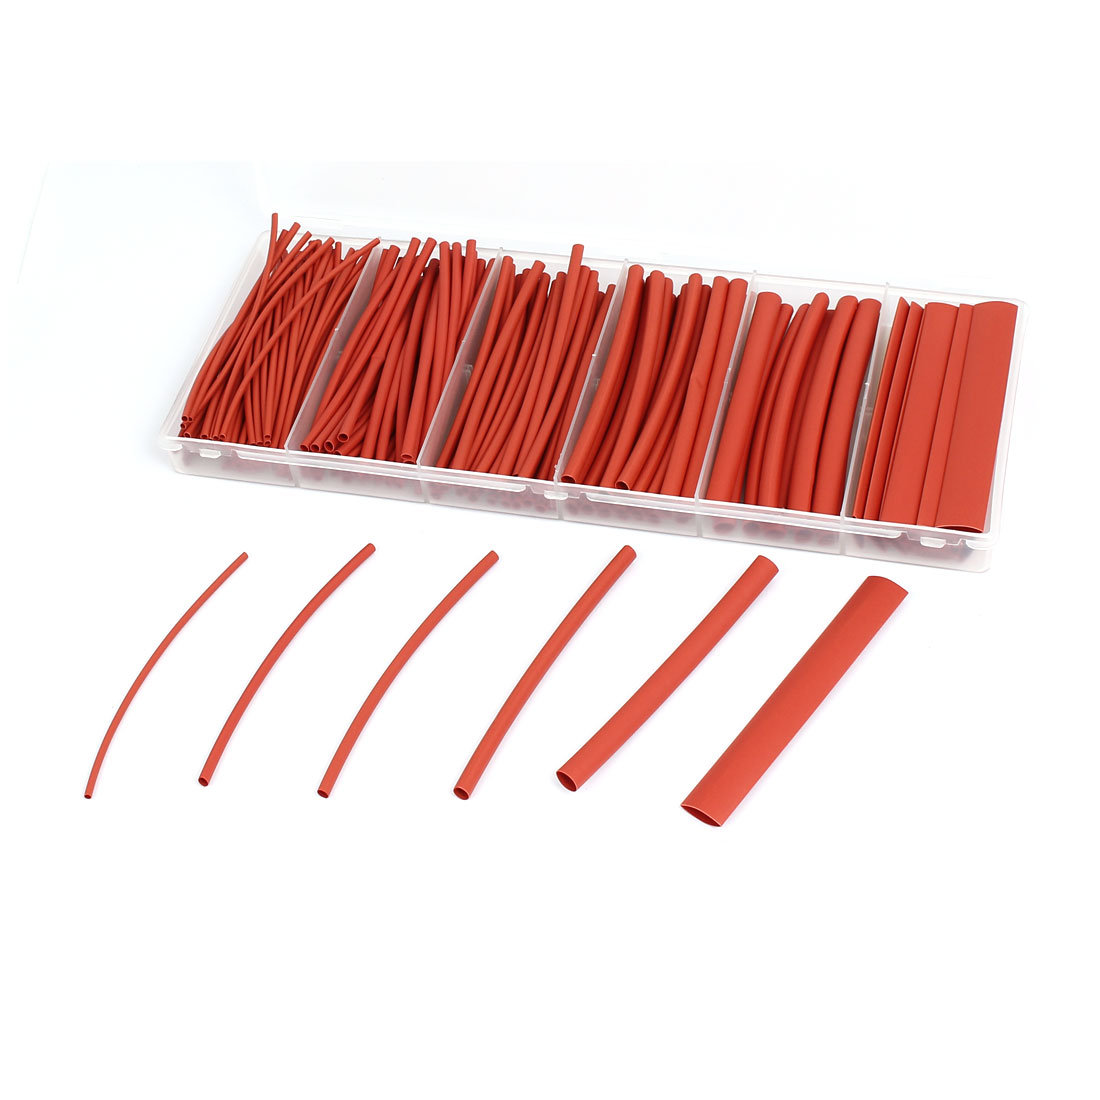 2:1 Heat Shrink Tube Wire Wrap Cable Sleeve Sets 6 Sizes Red w Case 160pcs